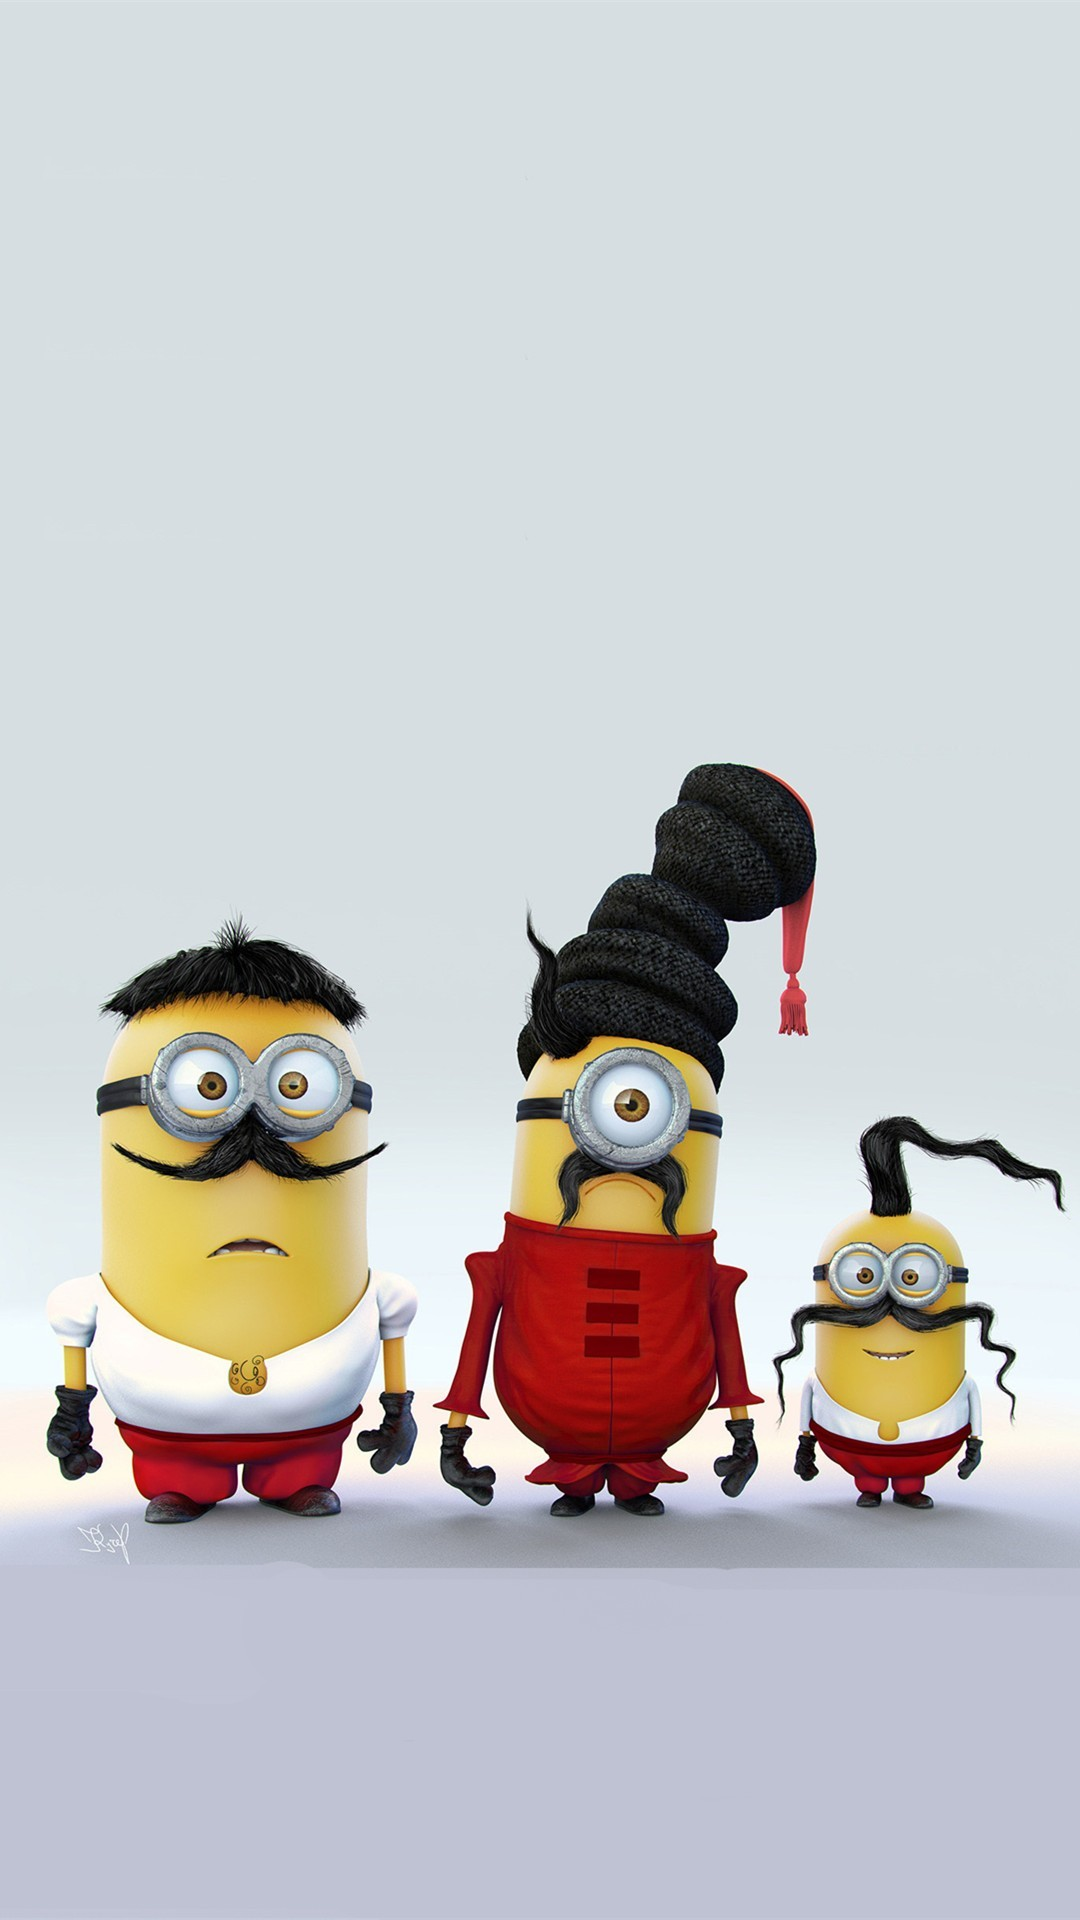 Minions with Mustache Family iPhone 6 Plus Wallpaper – HD, 2014 Halloween,  Despicable Me